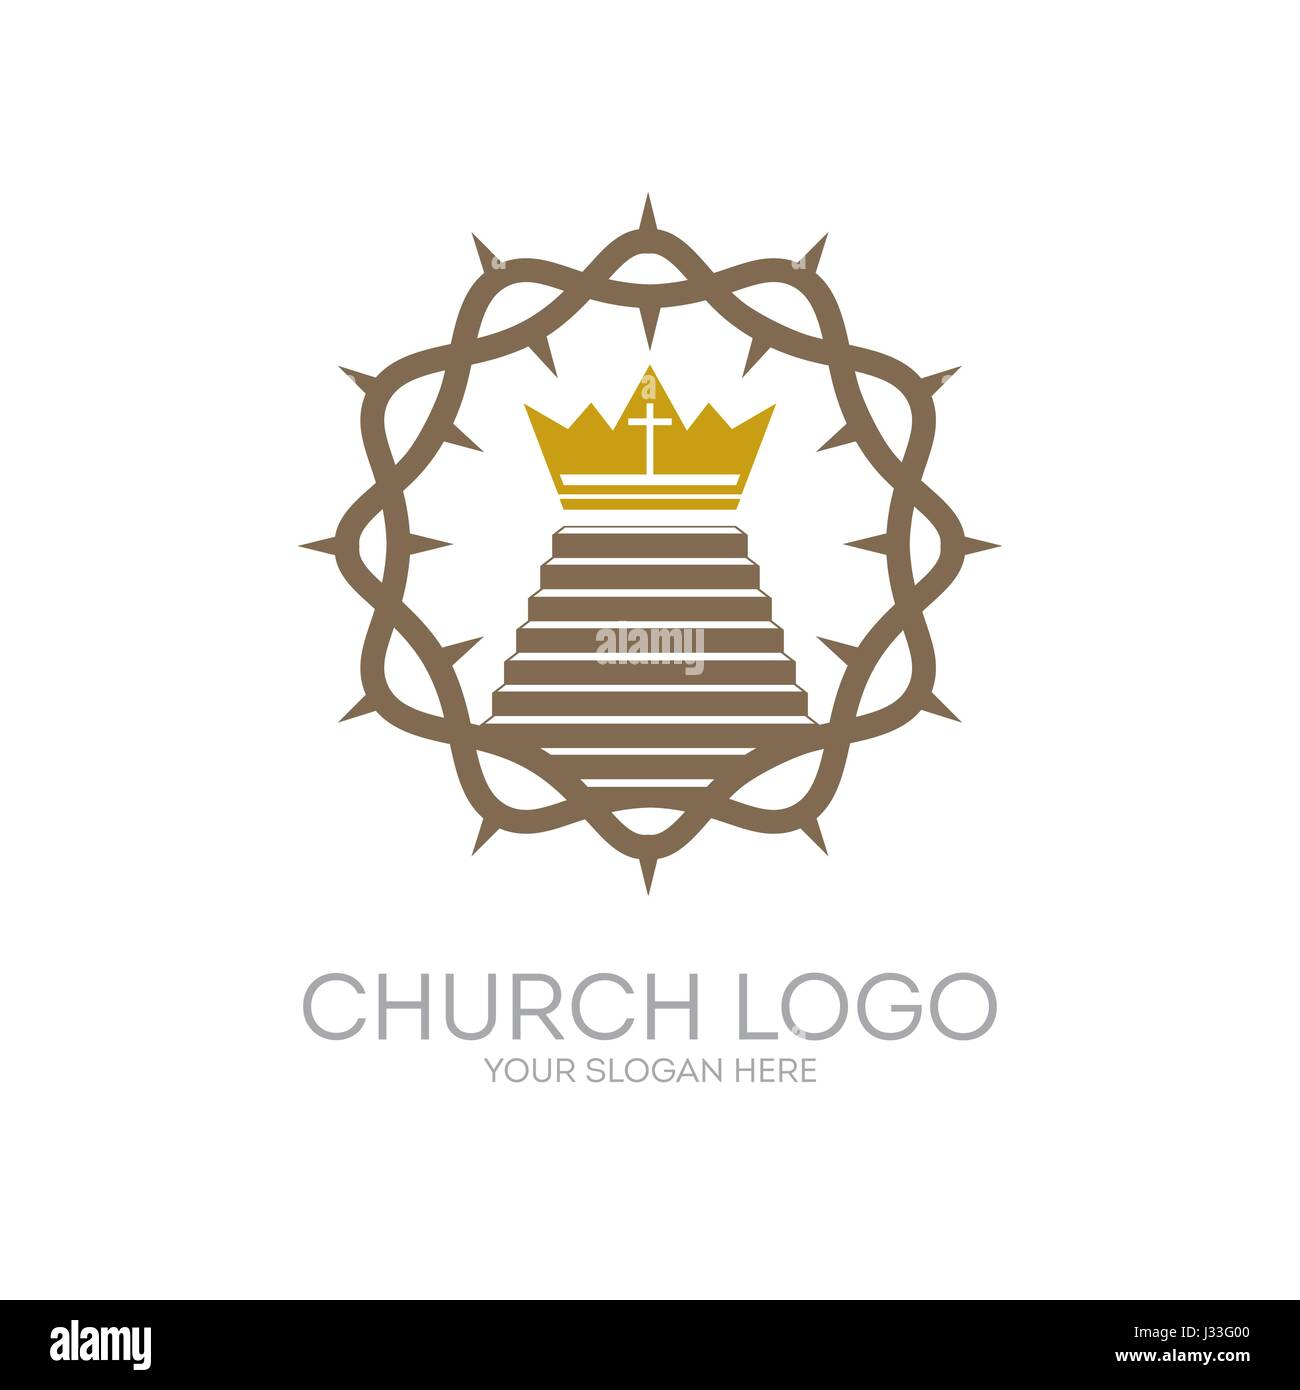 Church logo christian symbols the crown of thorns jesus christ christian symbols the crown of thorns jesus christ the savior and the staircase leading to the royal crown buycottarizona Image collections